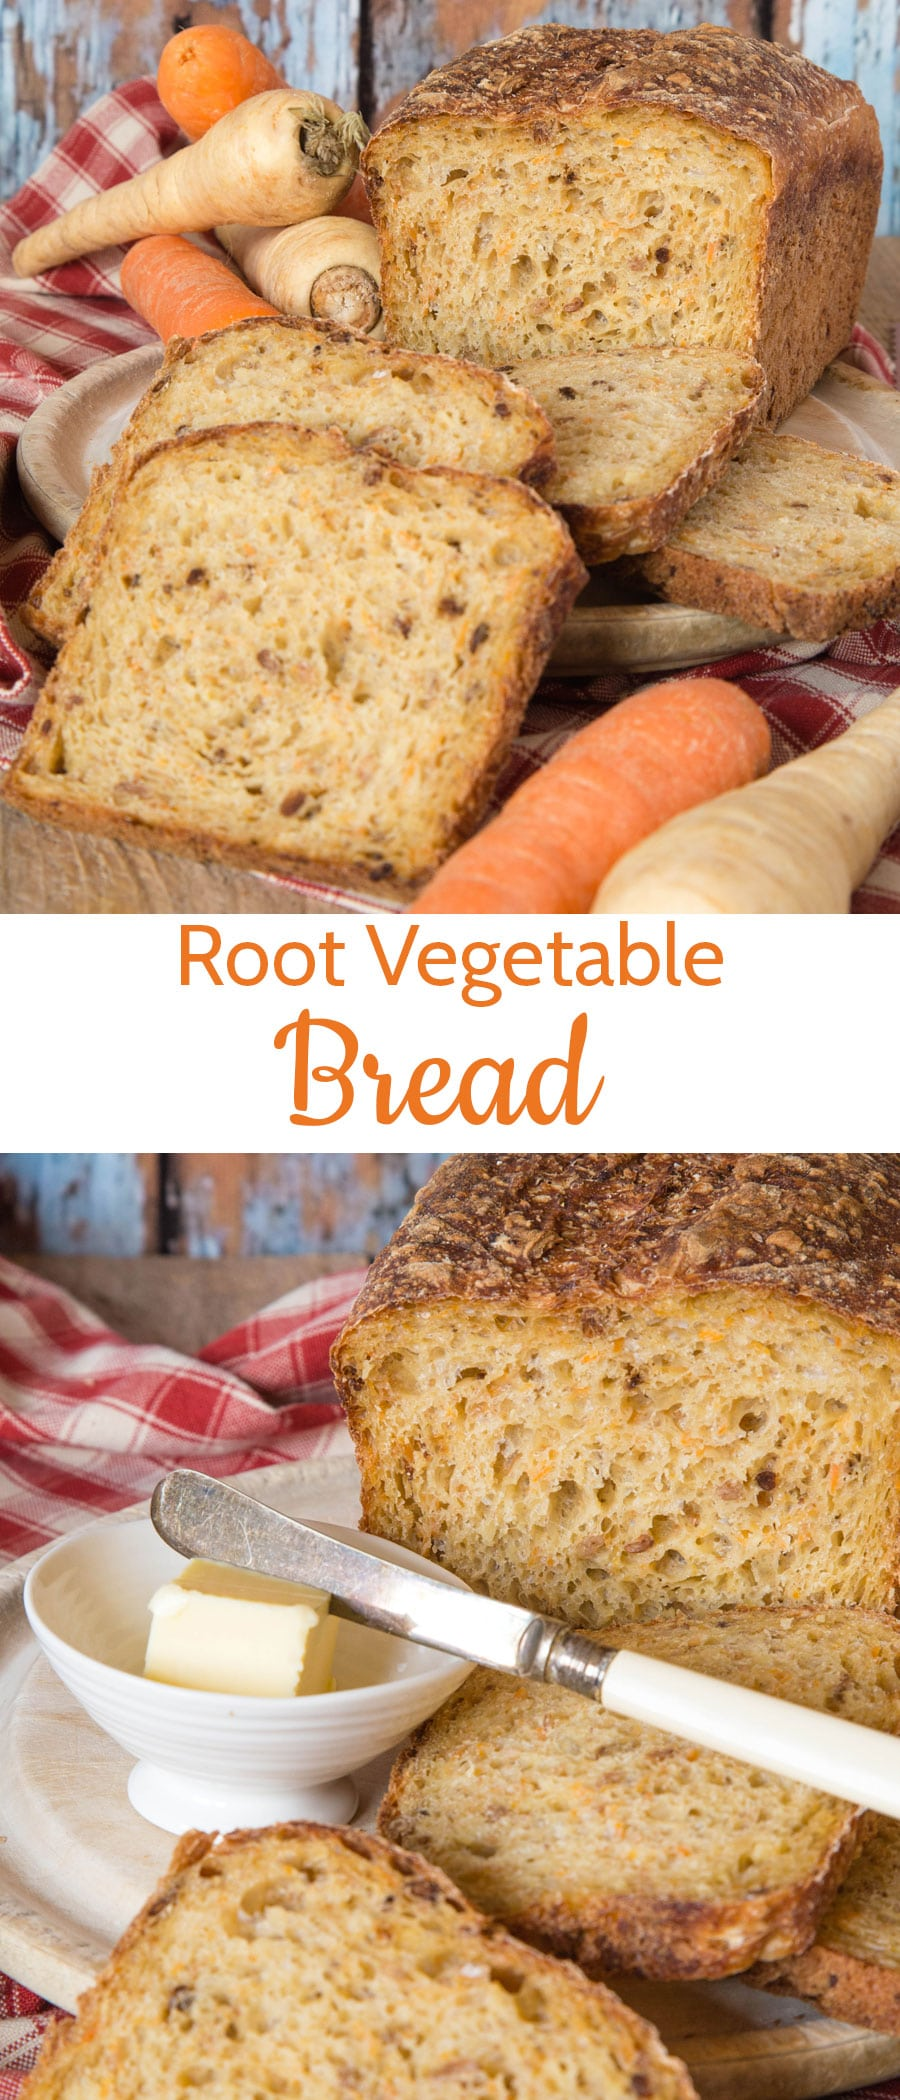 A delicious loaf of root vegetable bread.